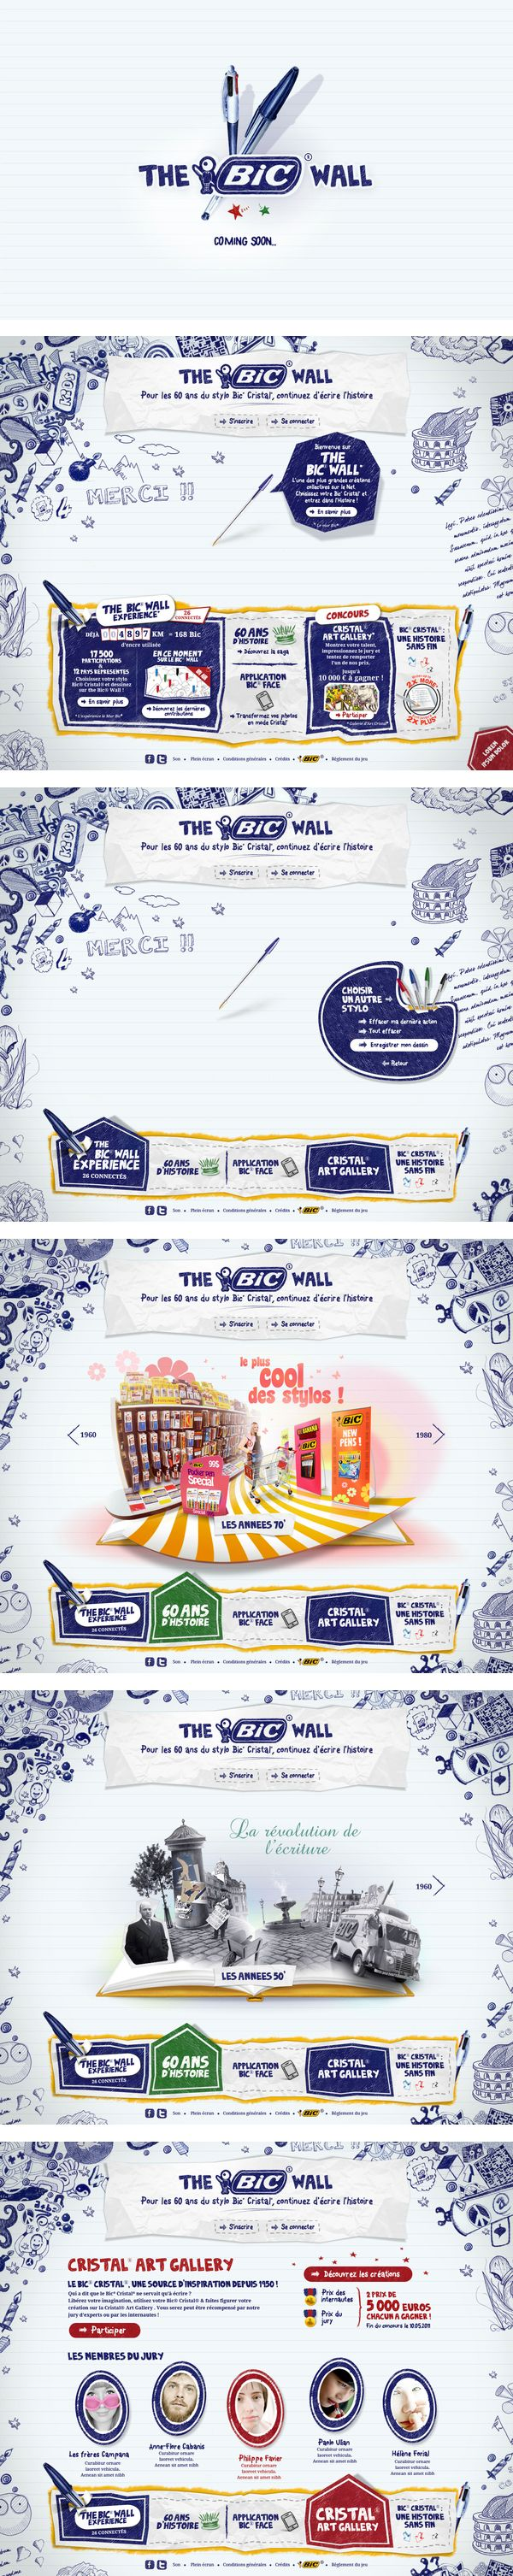 nice use of biro illustration on this site... funnily enough for Bic